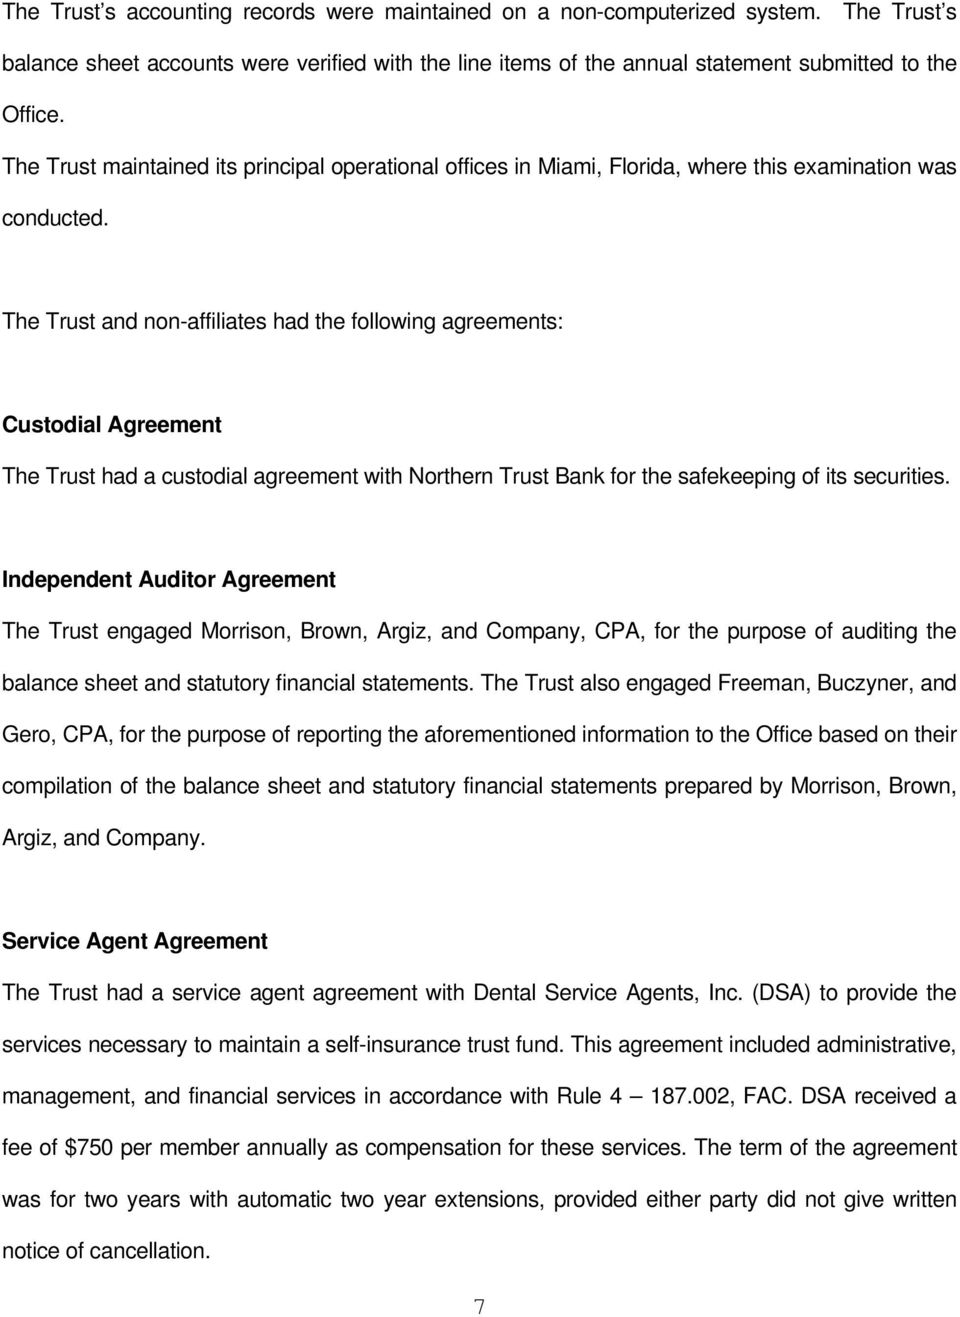 The Trust and non-affiliates had the following agreements: Custodial Agreement The Trust had a custodial agreement with Northern Trust Bank for the safekeeping of its securities.